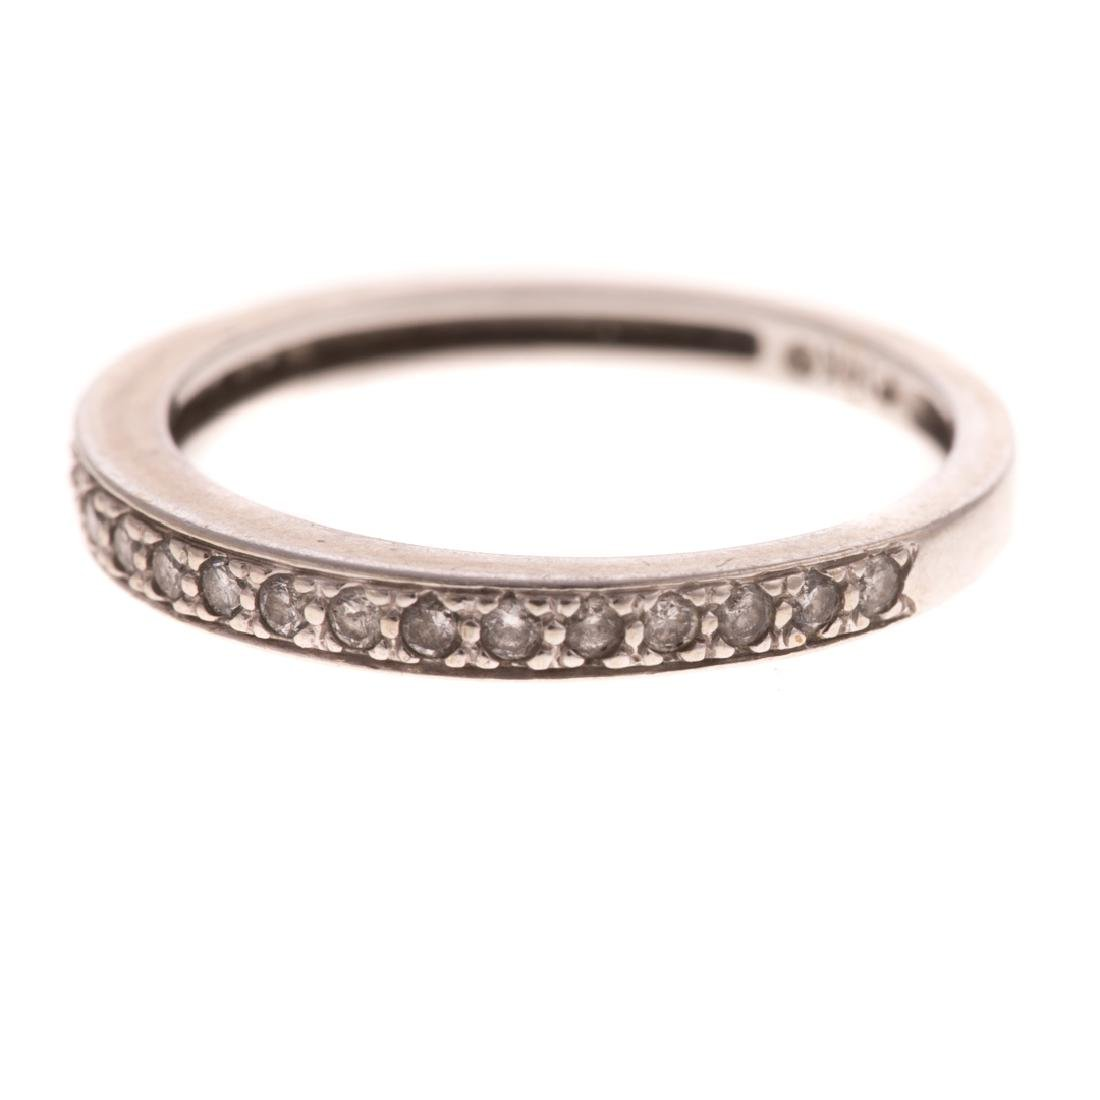 Two Lady's Diamond Wedding Bands in 14K Gold - 3